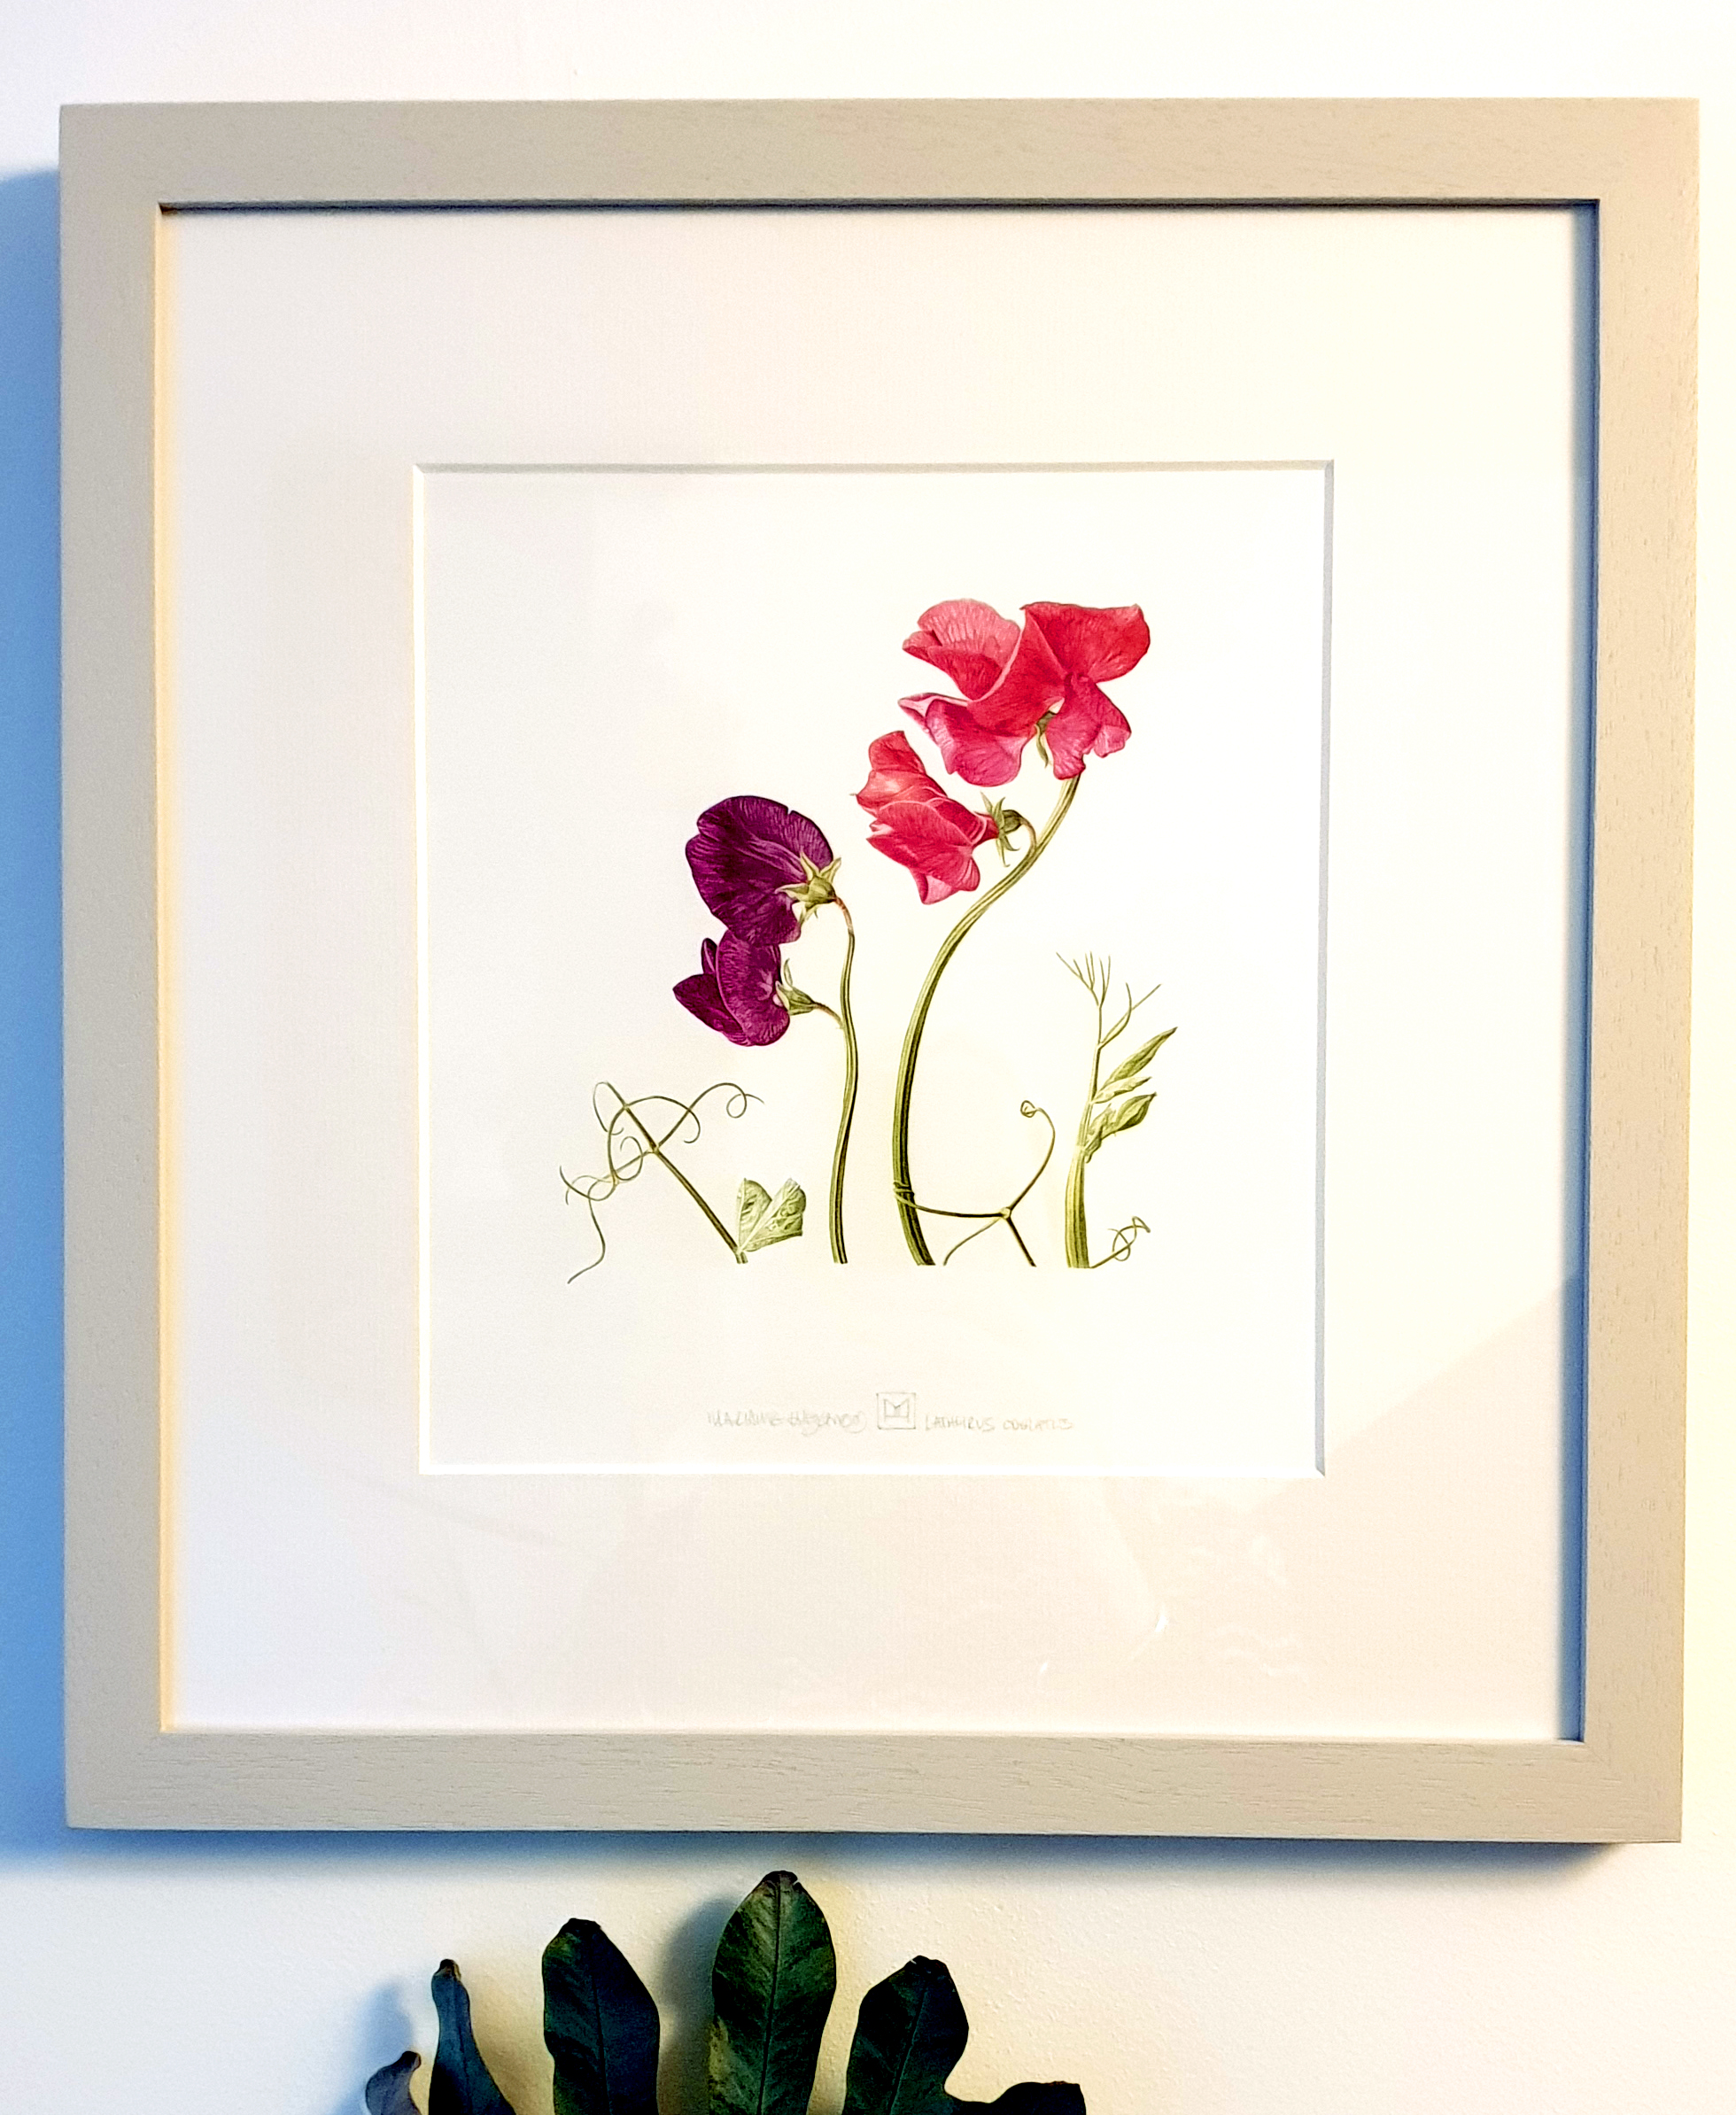 Sweet pea framed